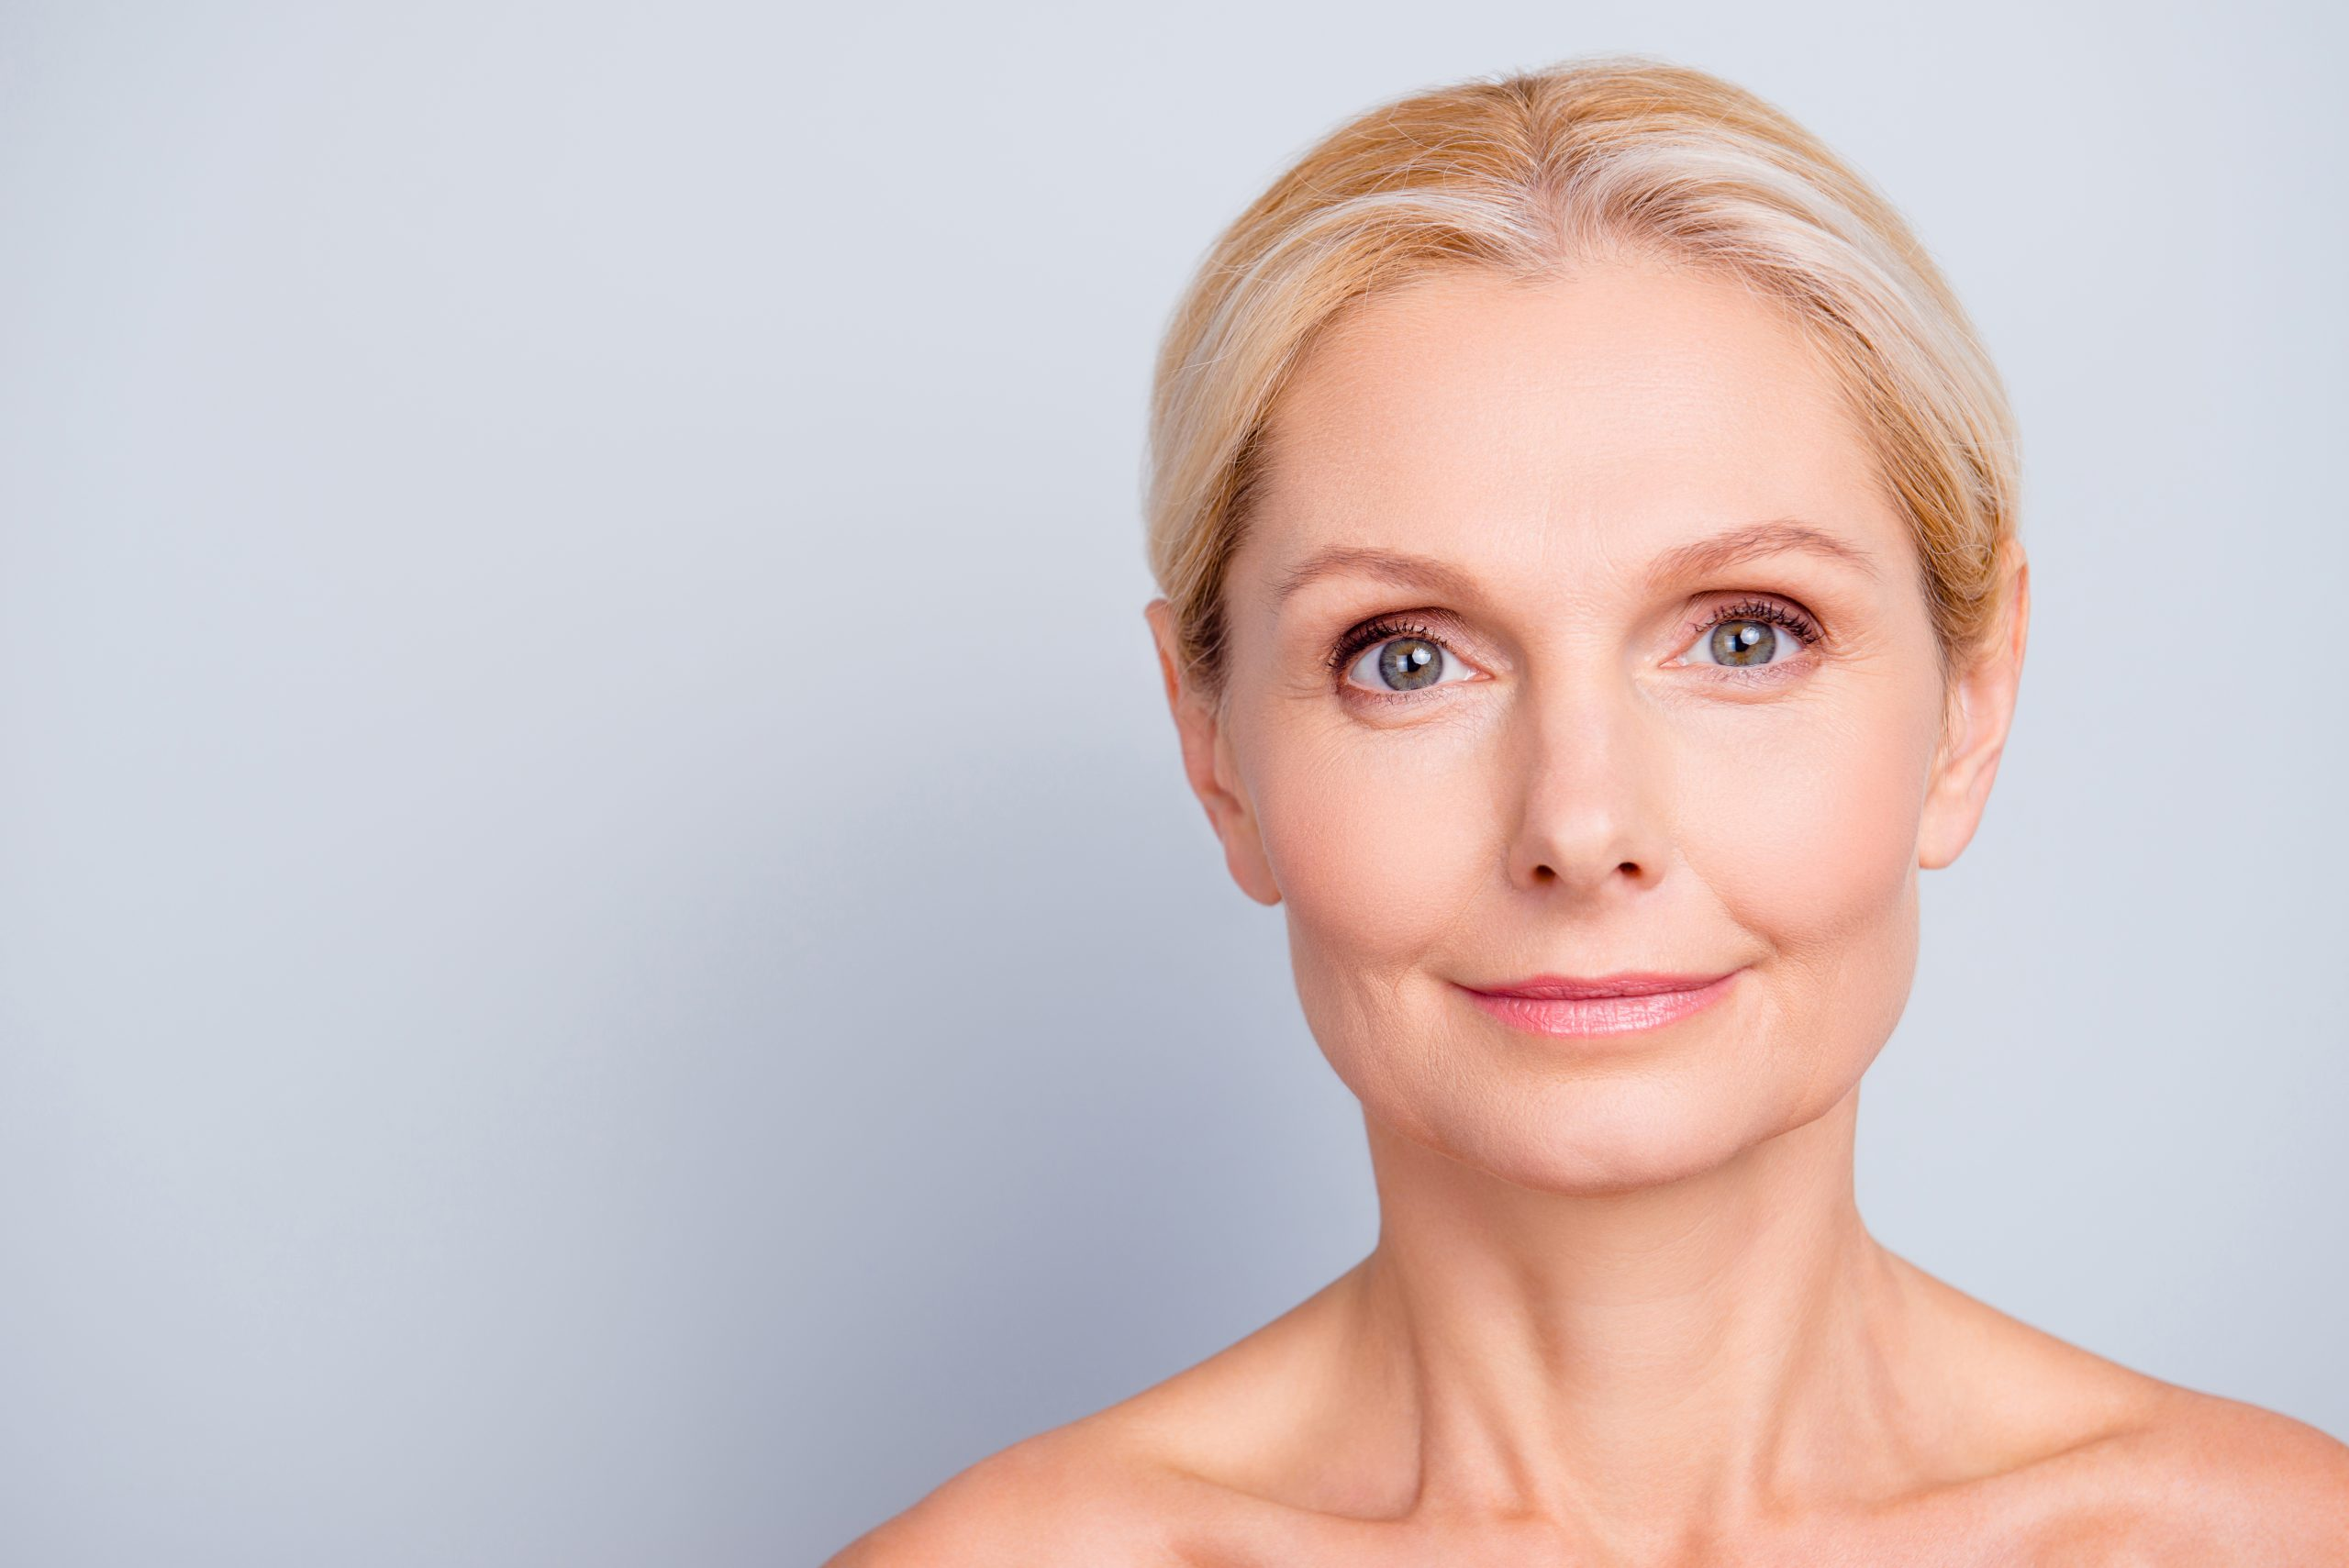 A middle aged woman with youthful skin free of wrinkles